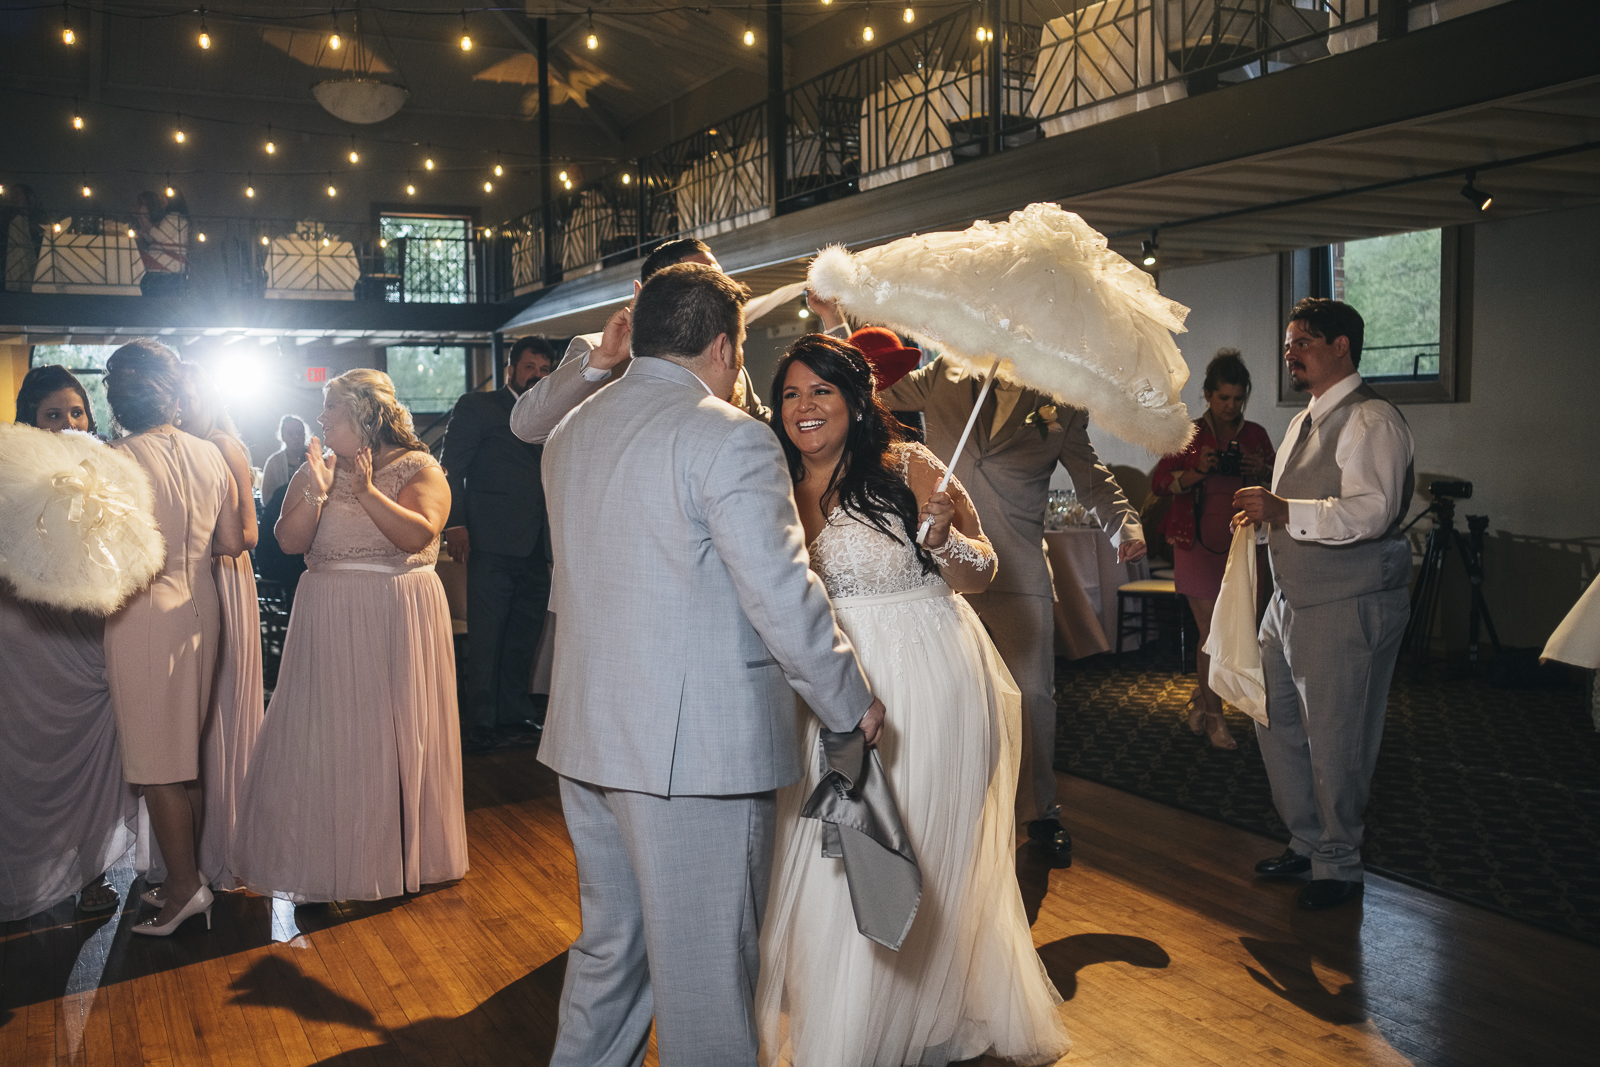 Bride and groom do Second Line, New Orleans Wedding tradition, at their wedding reception.